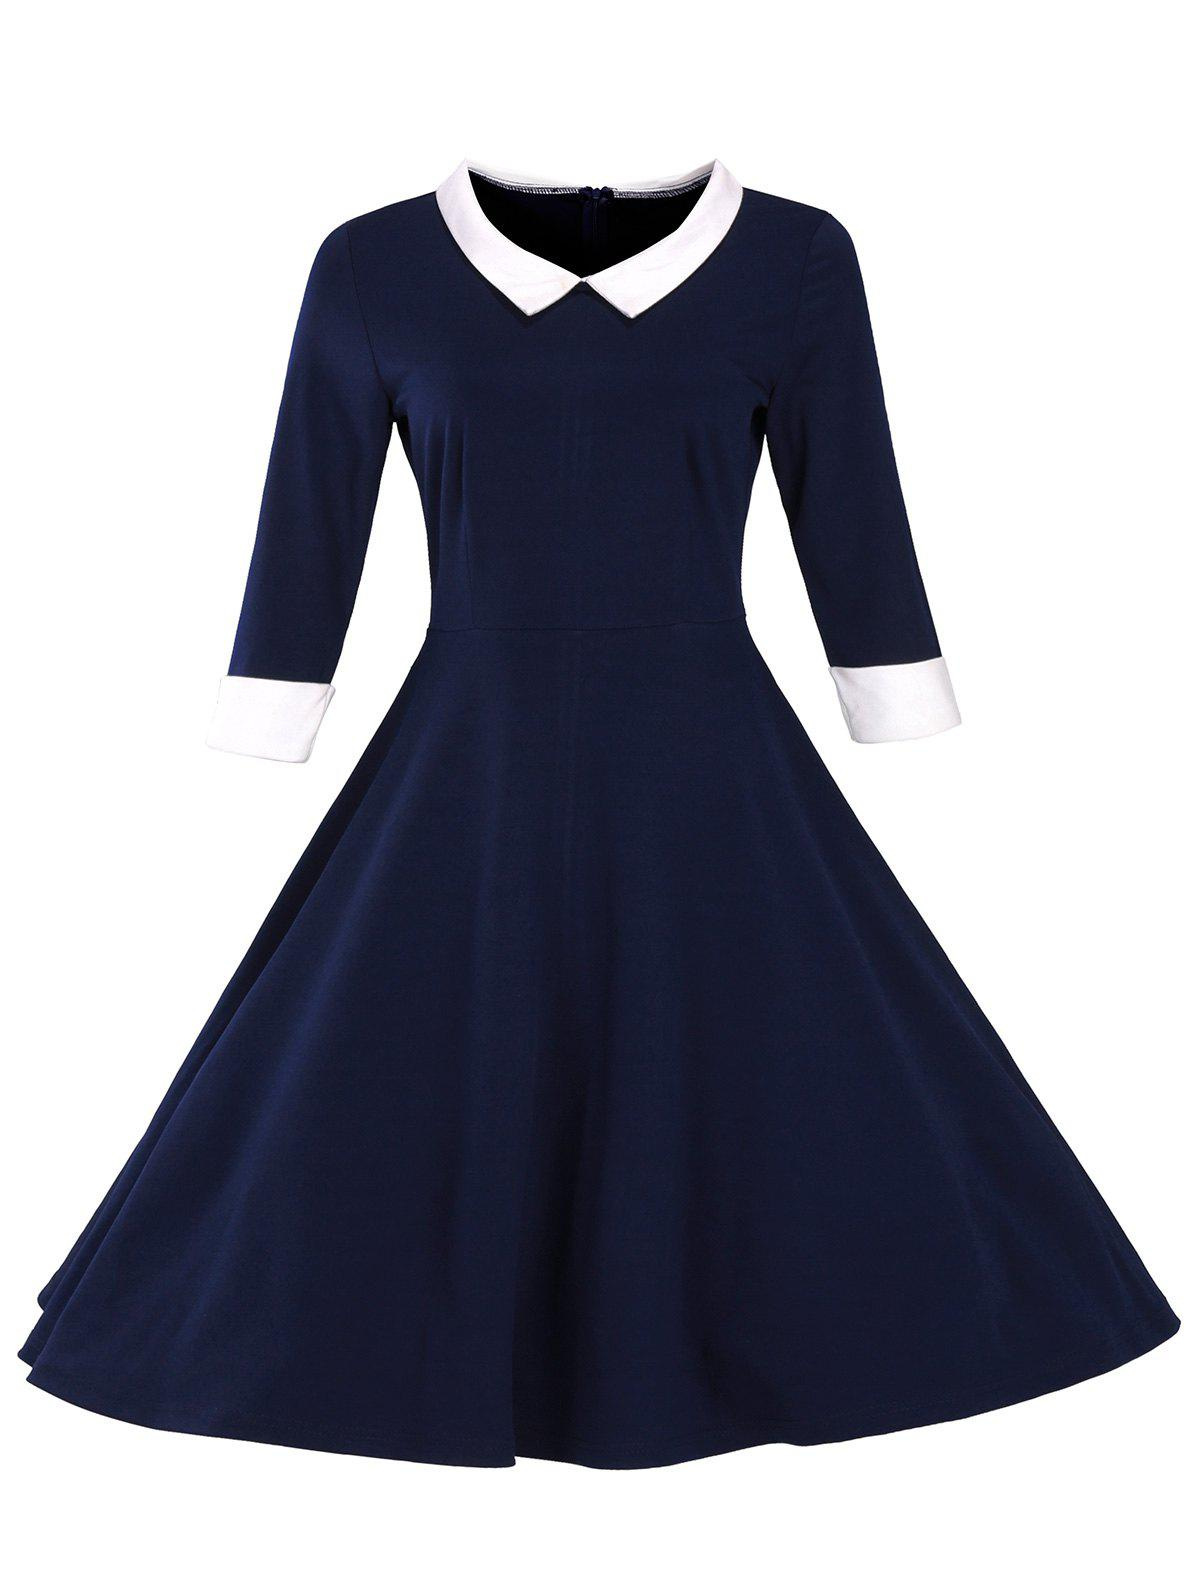 Purplish Blue M Retro Flat Collar Flare Dress Rosegal Com